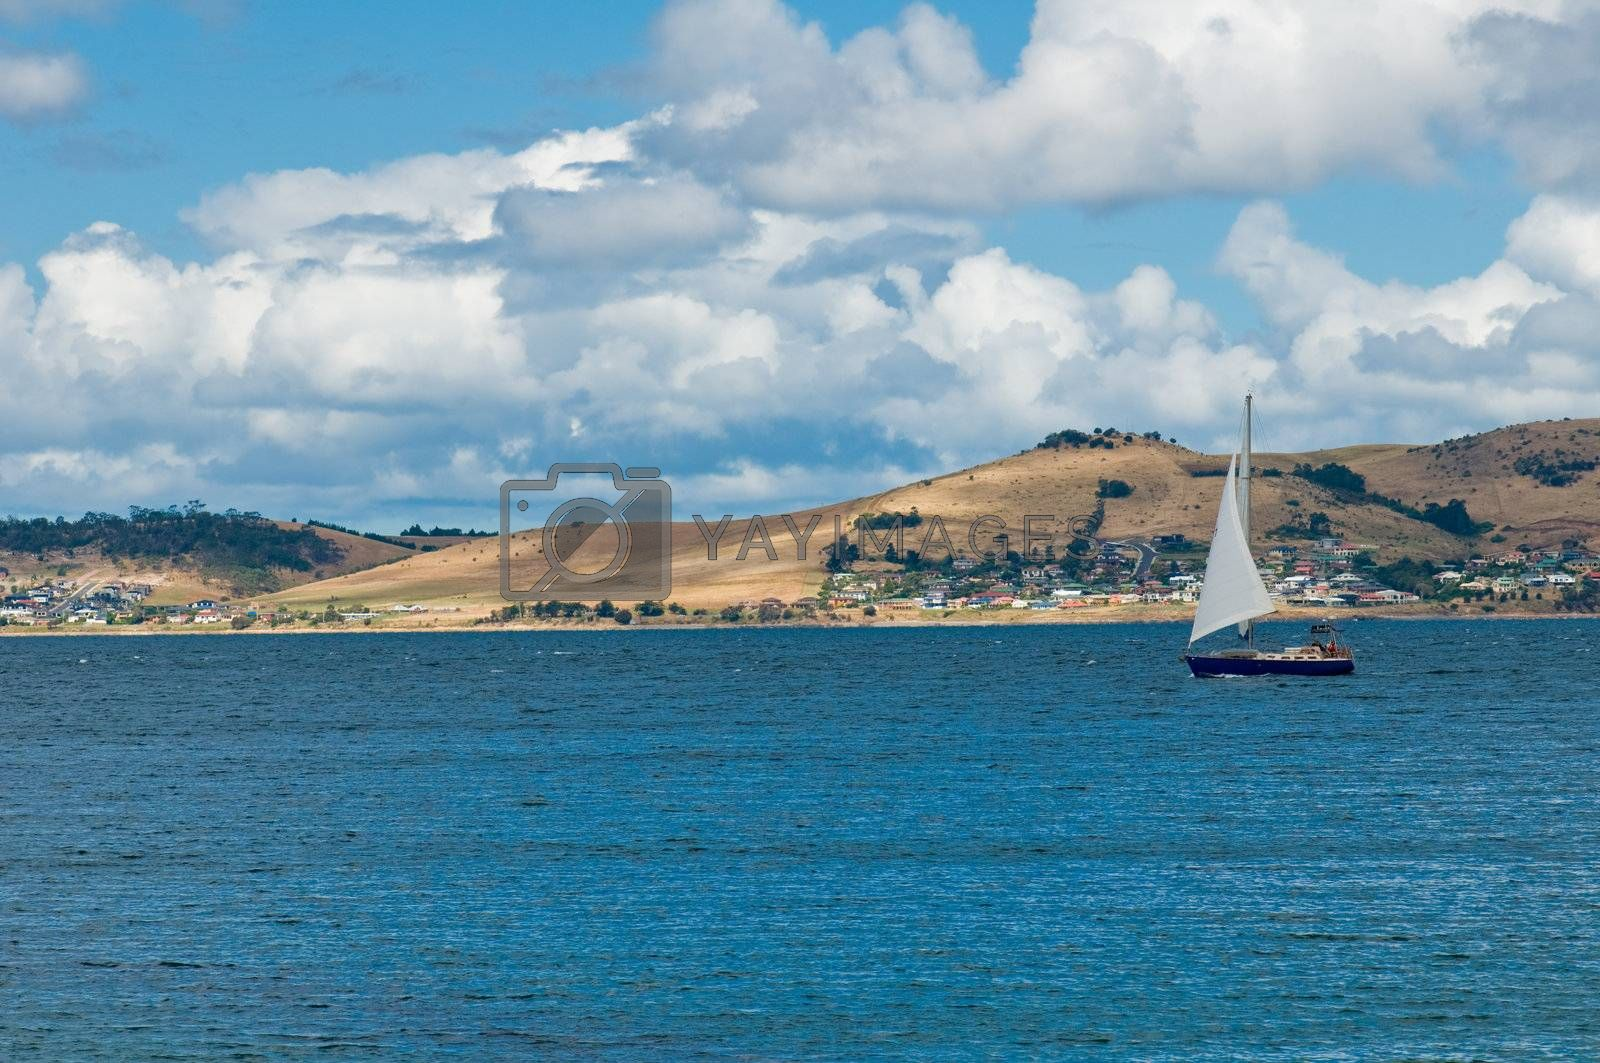 Luxury yacht sails in blue waters towards a harbour along the coast line. The sky is summer blue with nice big summer clouds.